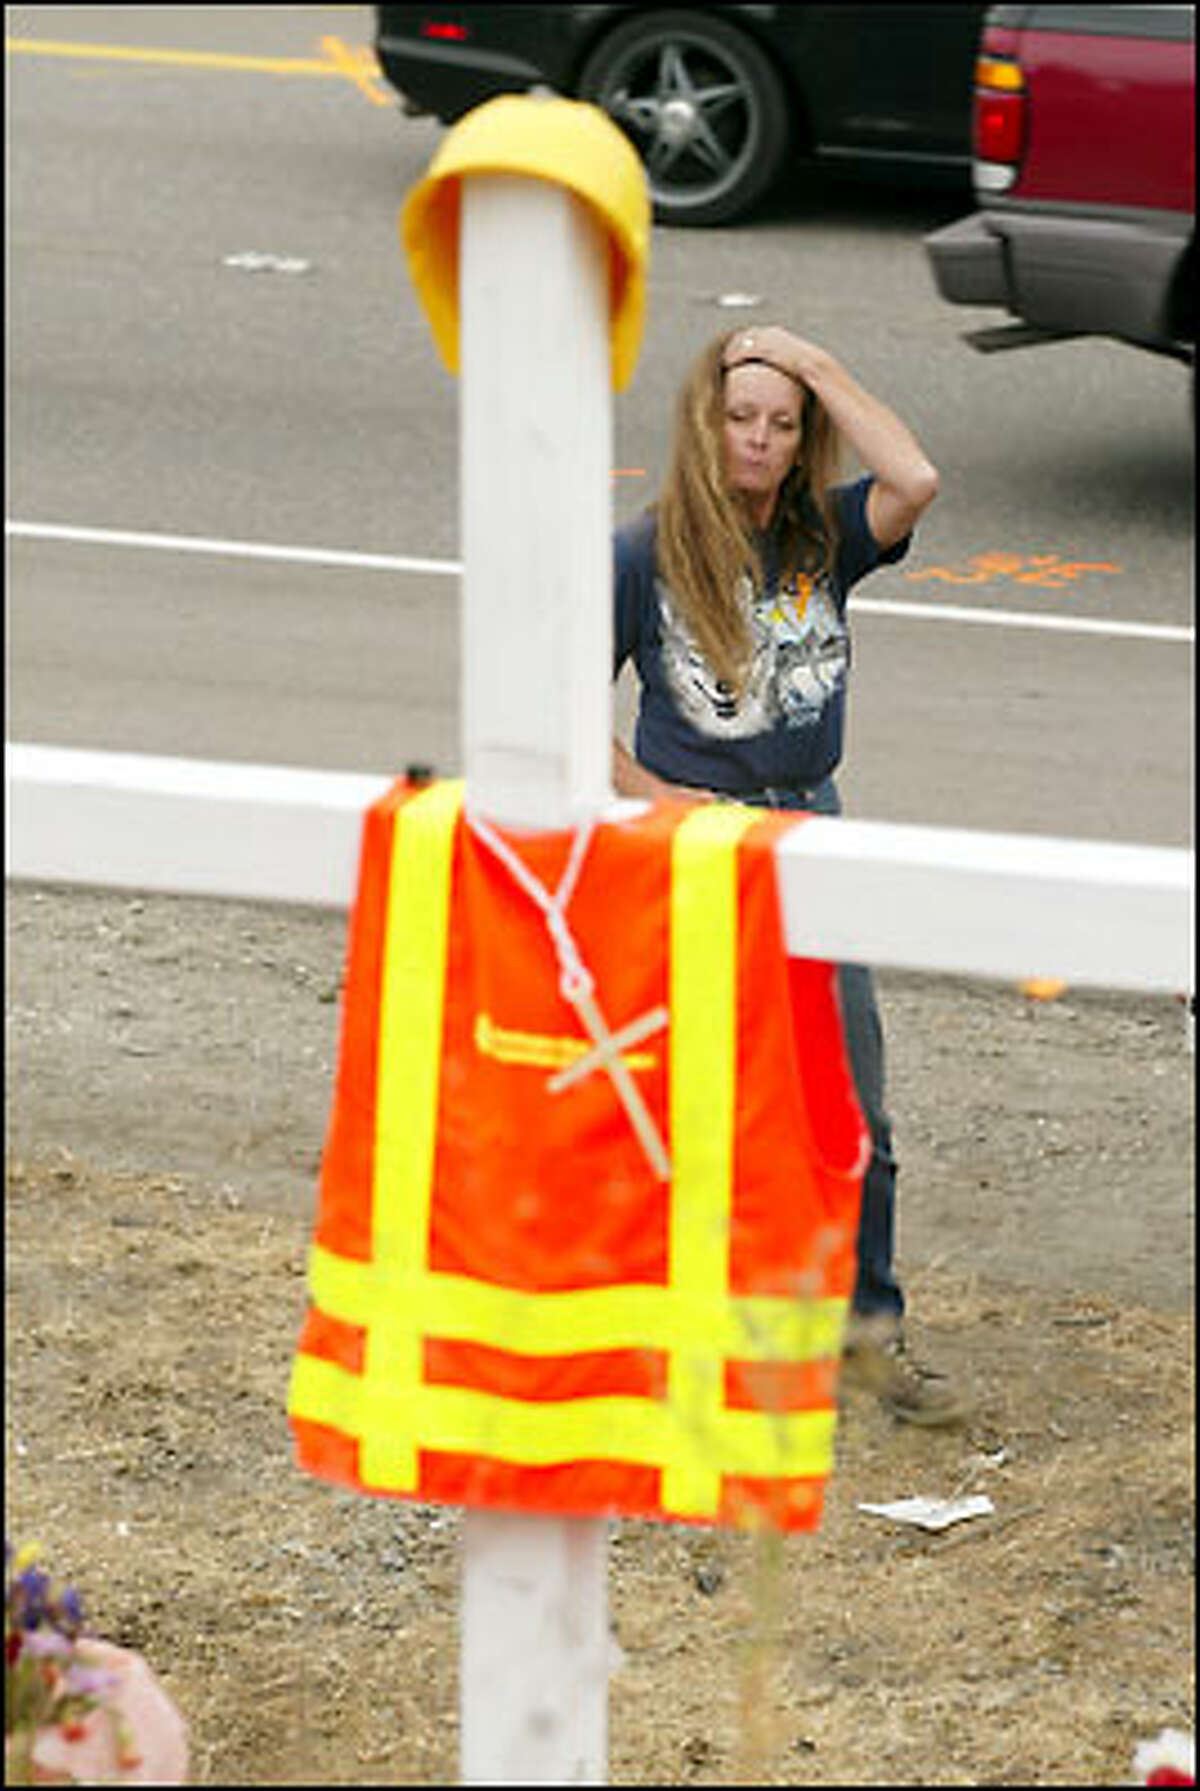 Washington State D.O.T. worker Esther Paokovich, whom Jake Baardson trained, mourns at the scene of the accident that killed Baardson last week on Highway 18. Paokovich witnessed the accident and called 911.